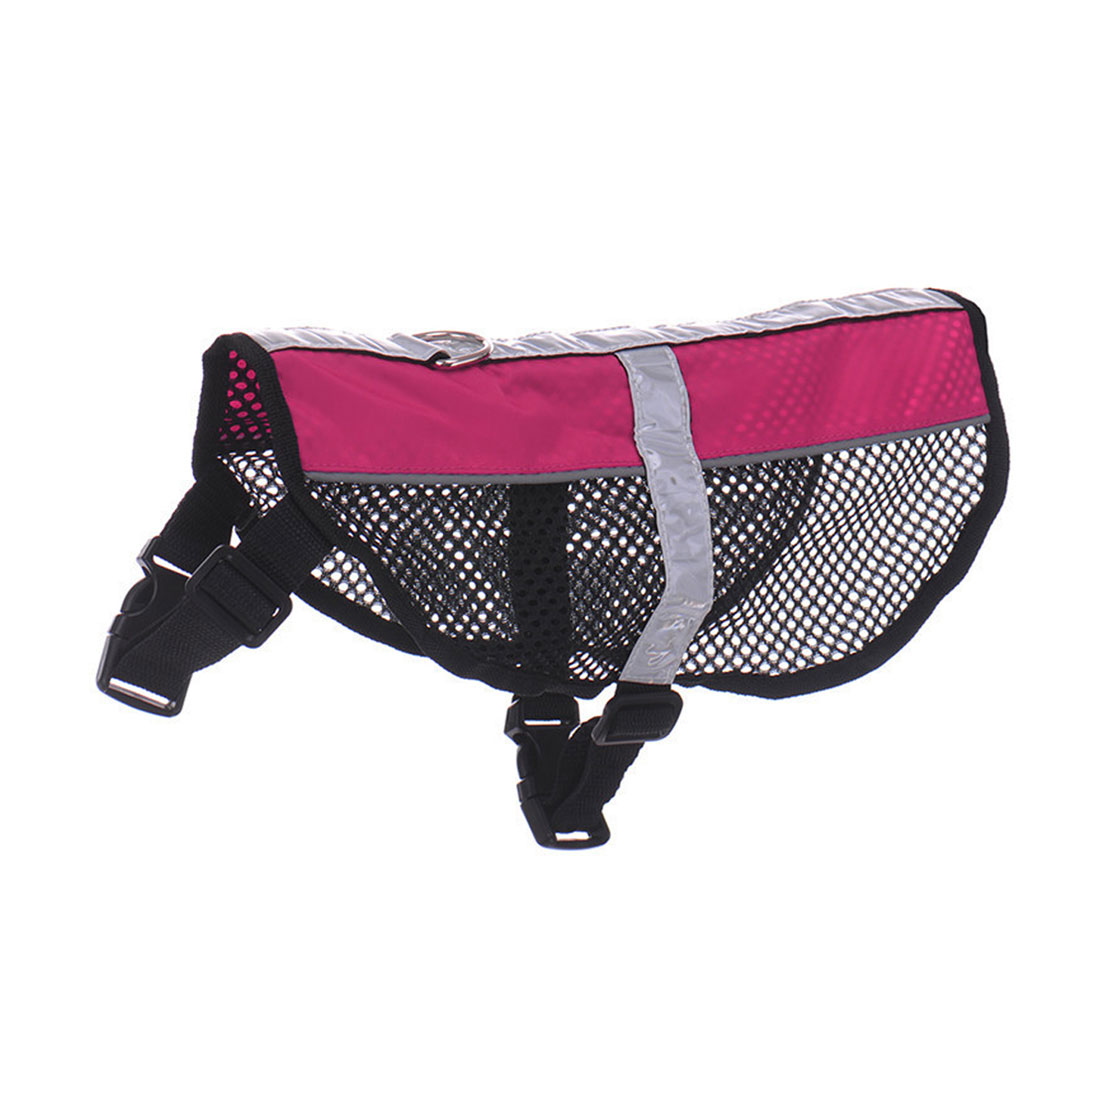 Service Dog Mesh Vest Harness Cool Comfort Nylon High Visibility Safety Jacket Pink M